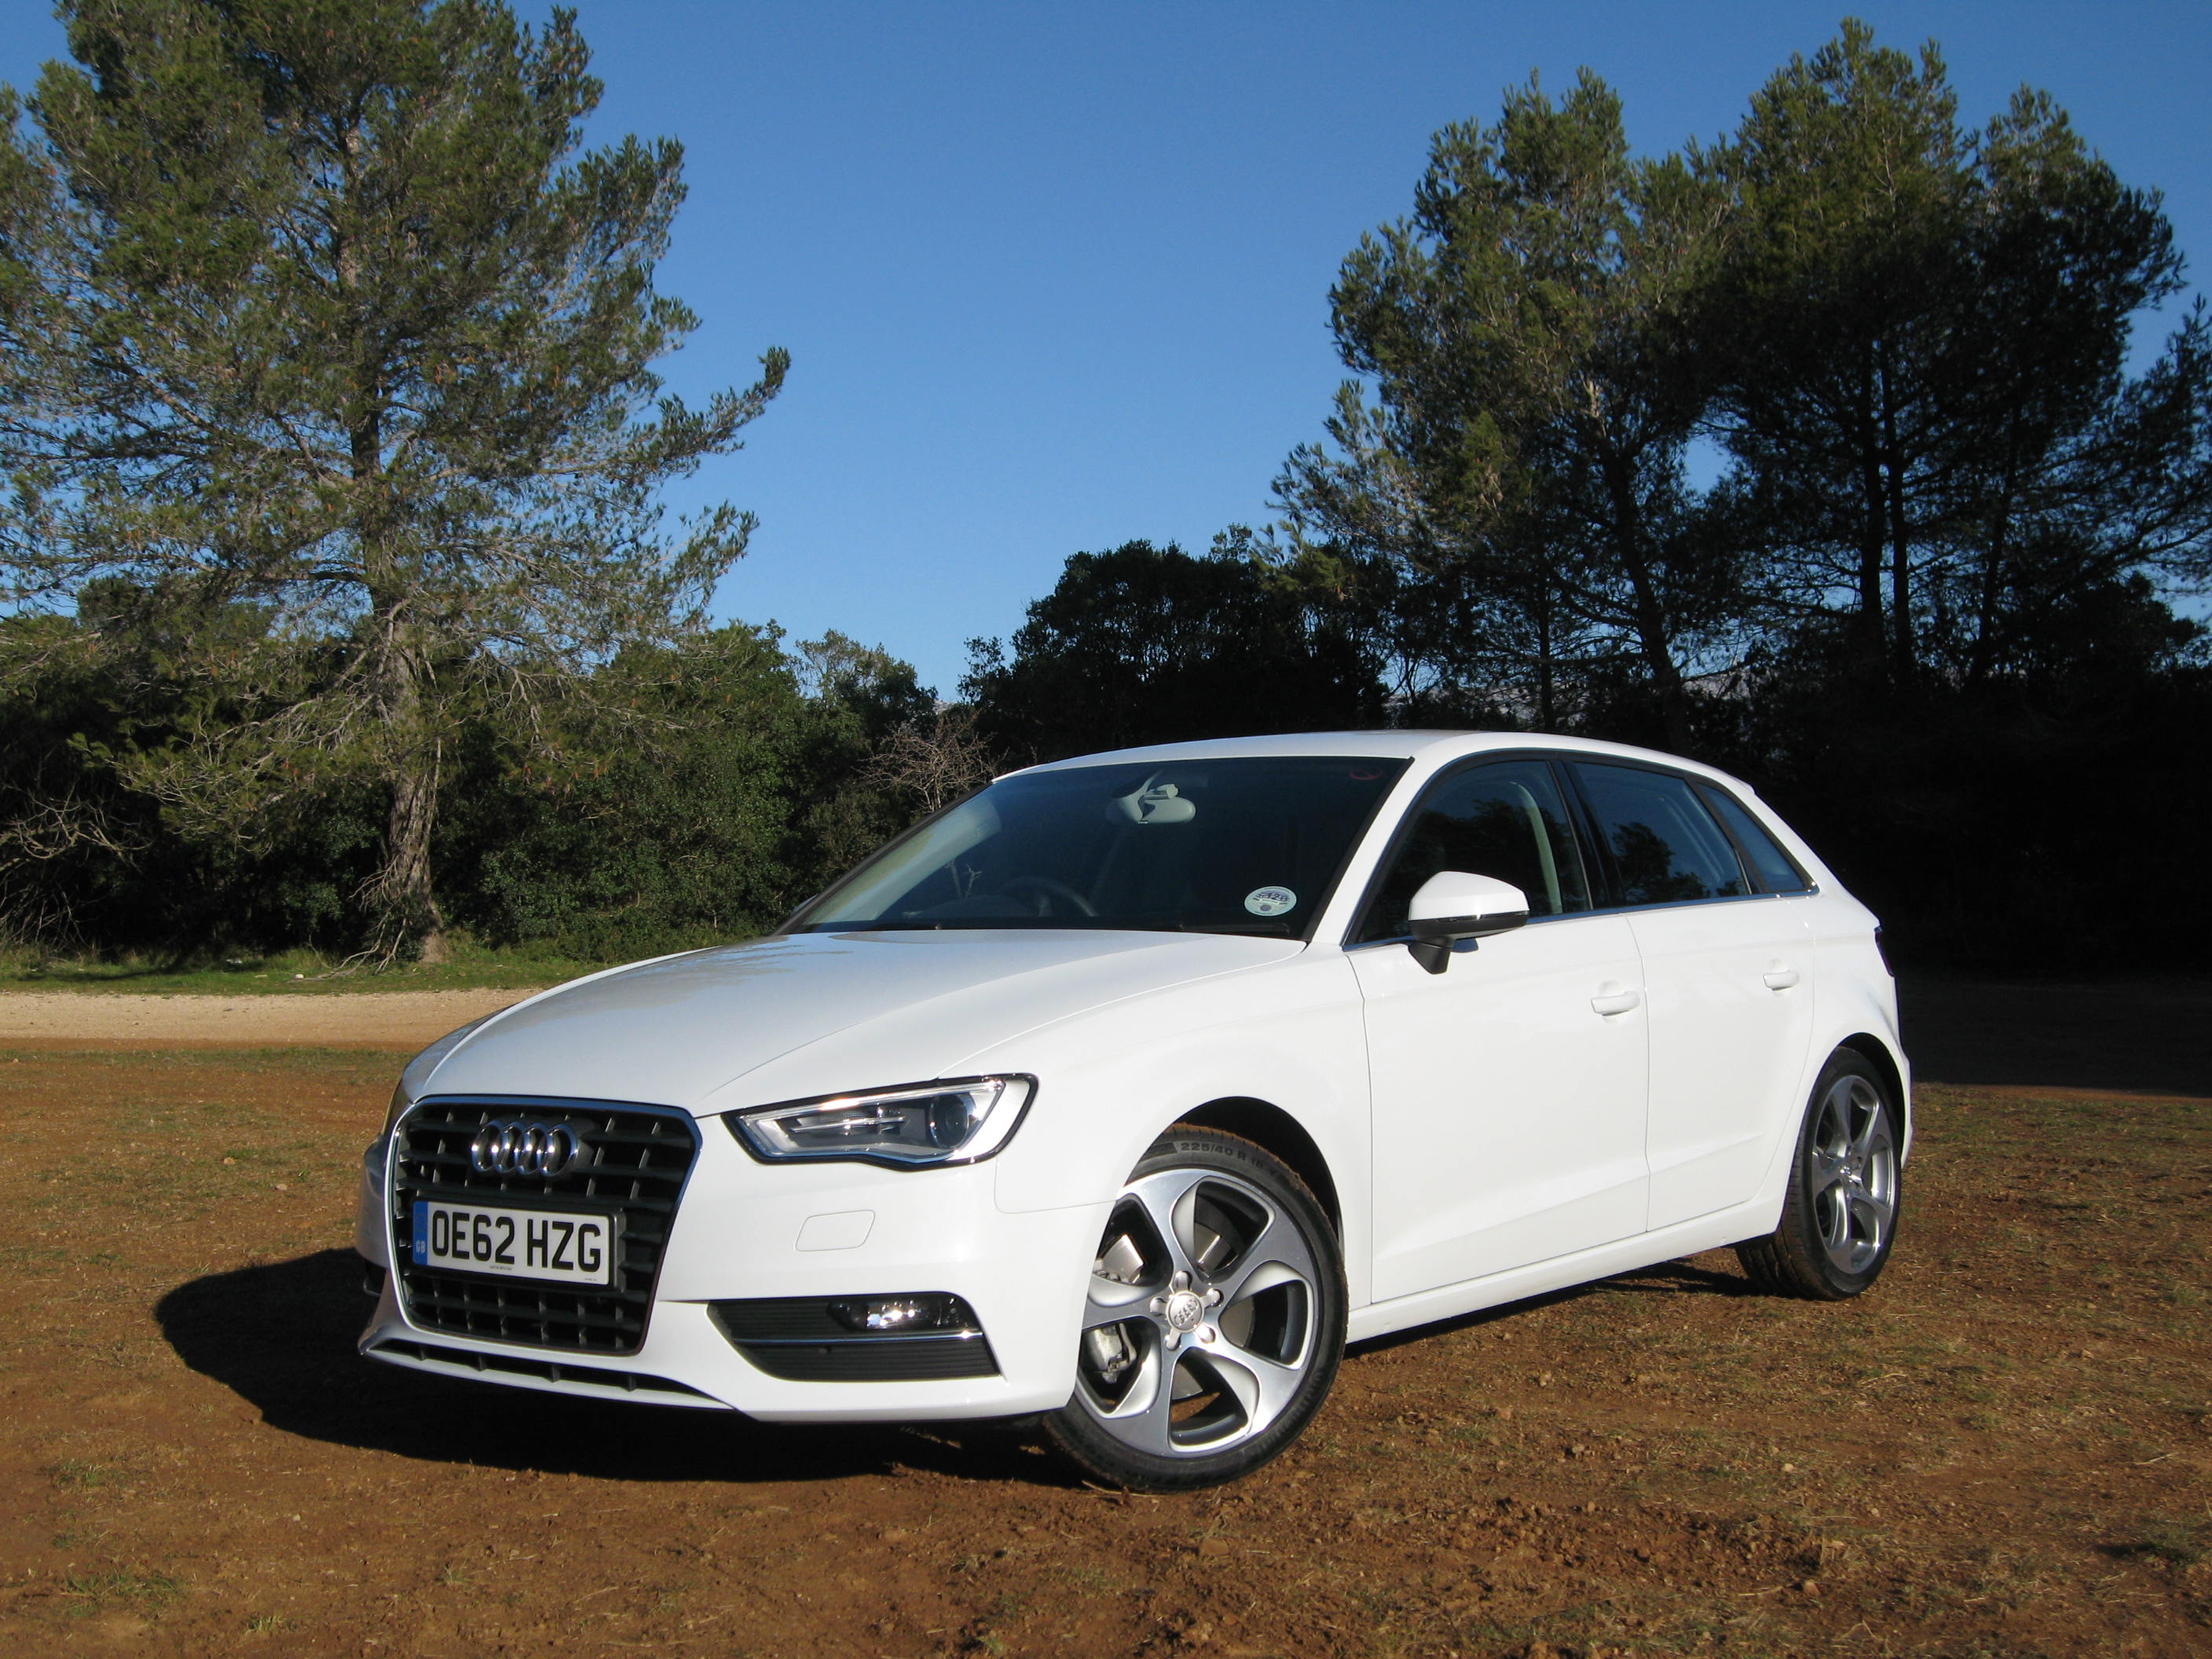 Audi A Sportback Road Test Proves Its Lost None Of Its Practicality - Audi a3 sportback